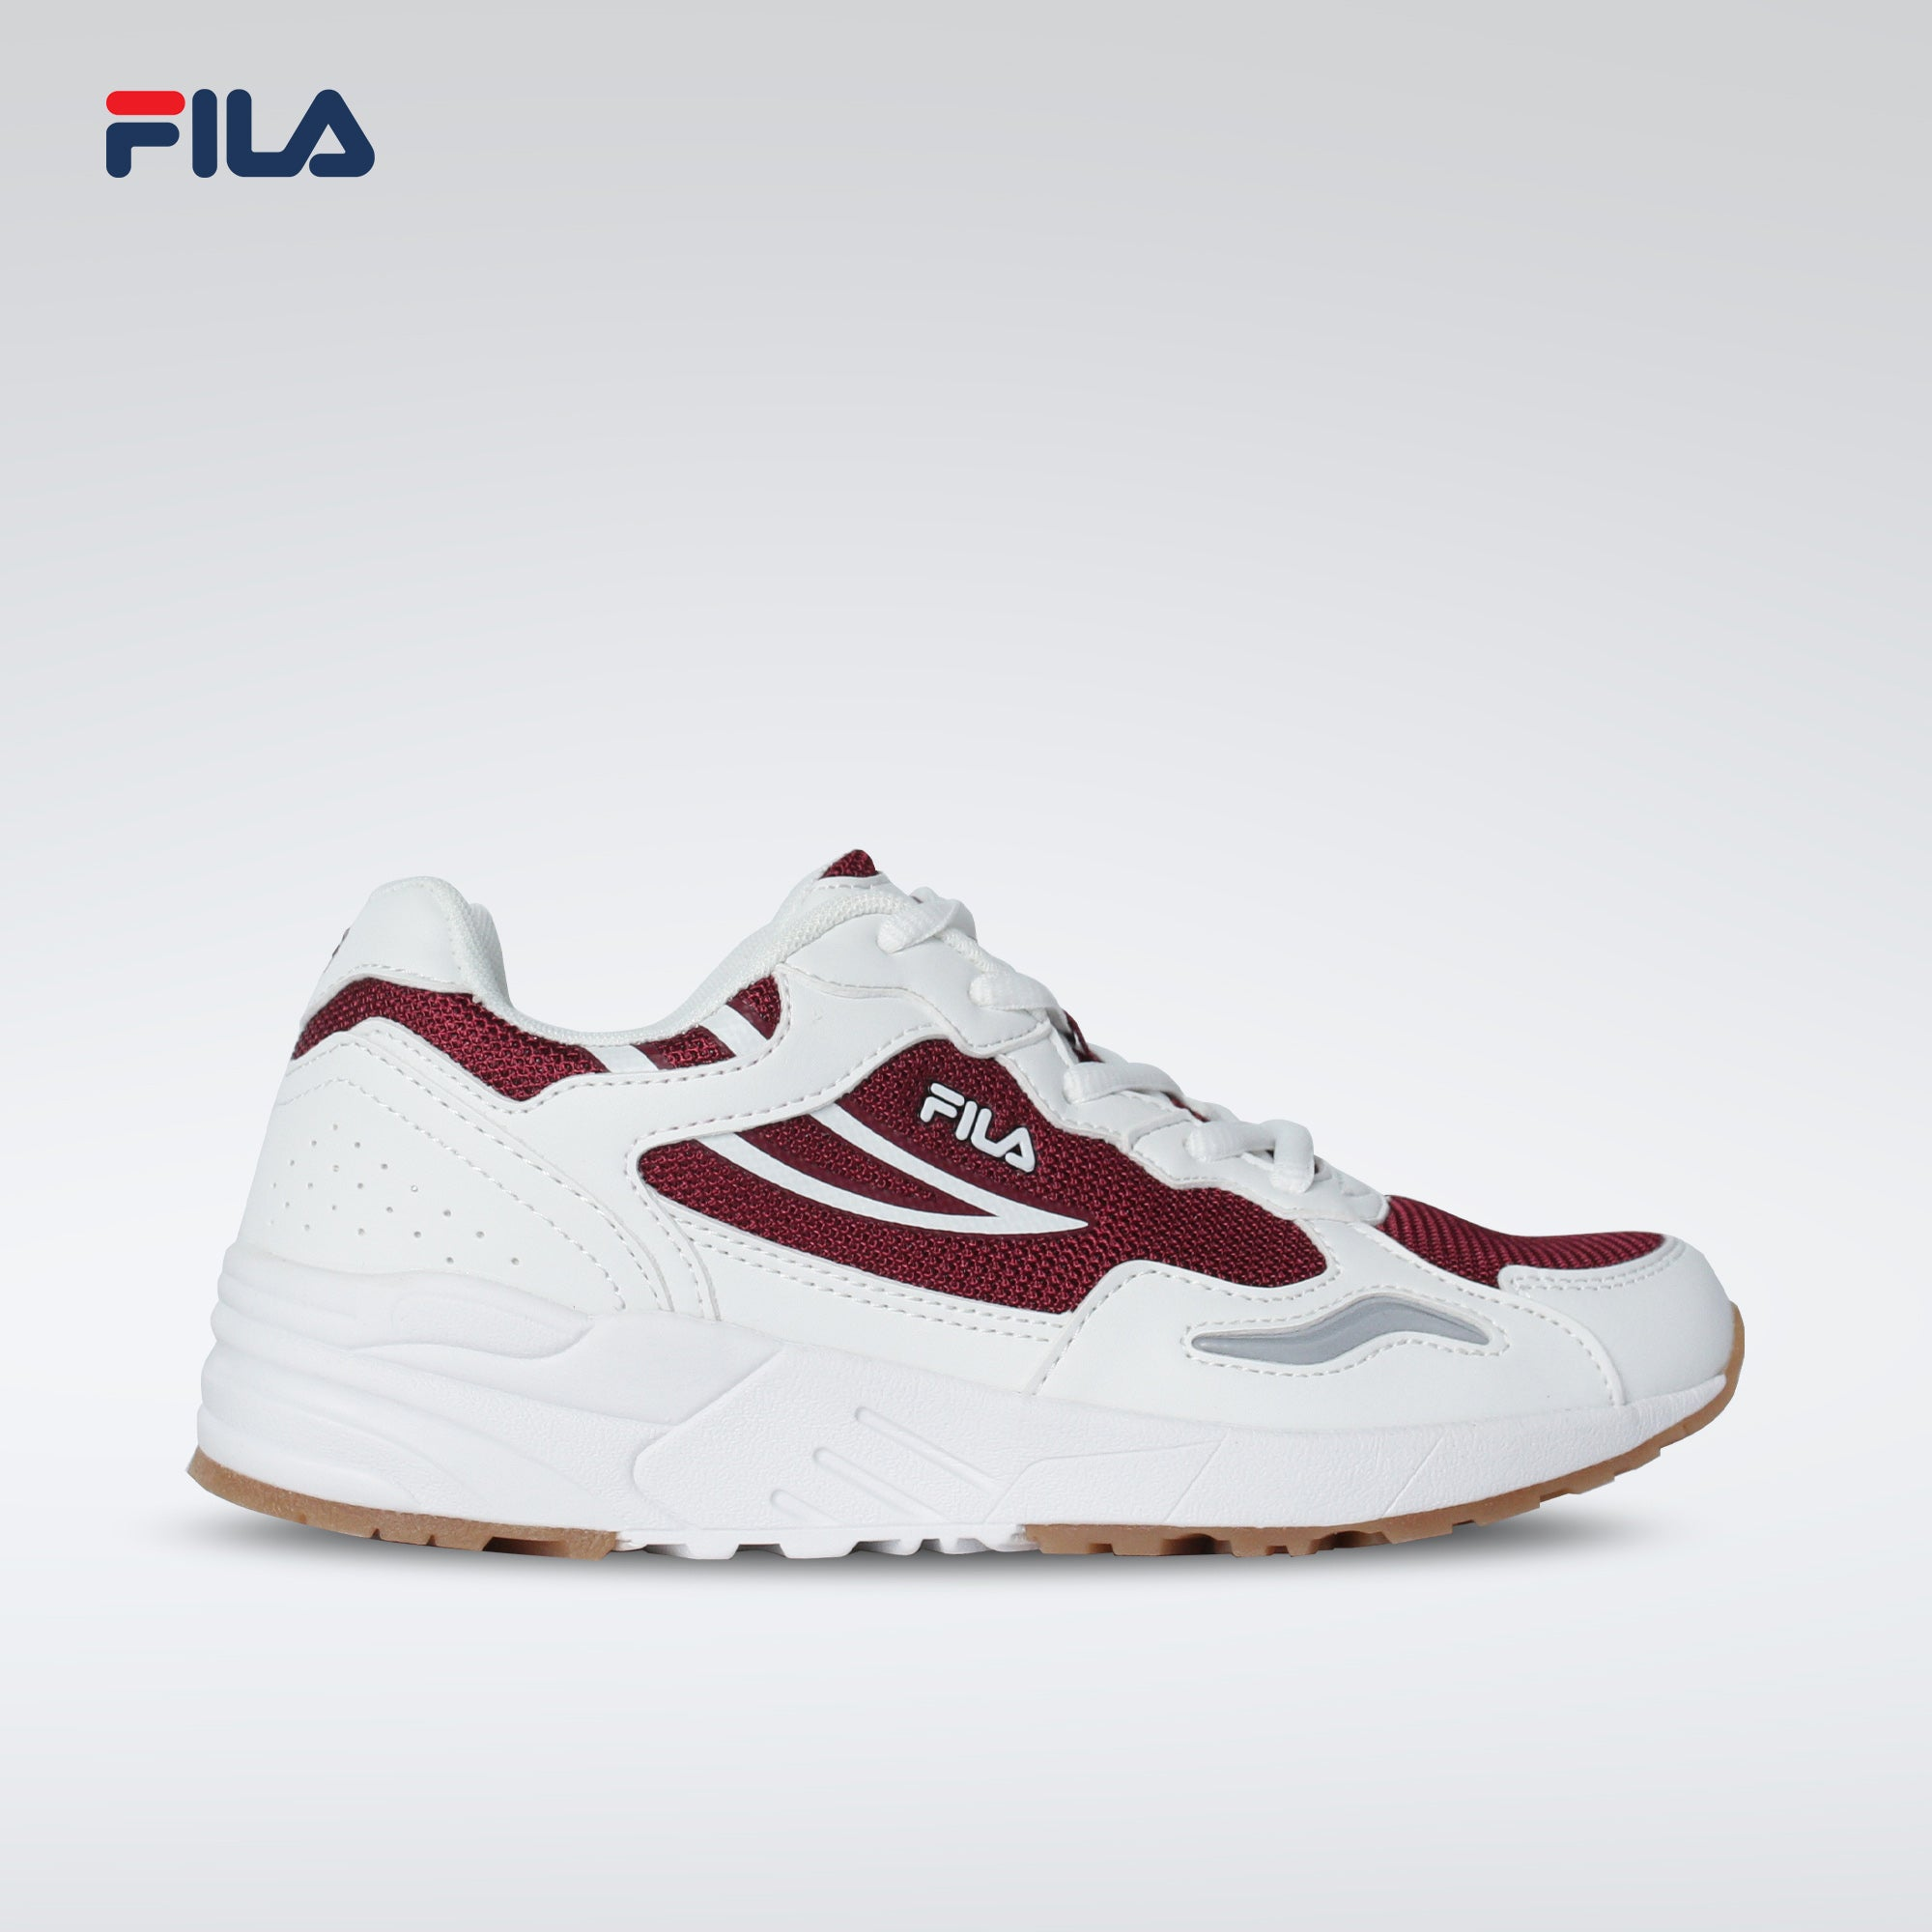 Fila Women's Surface Run Pro (Wht/Maroon)